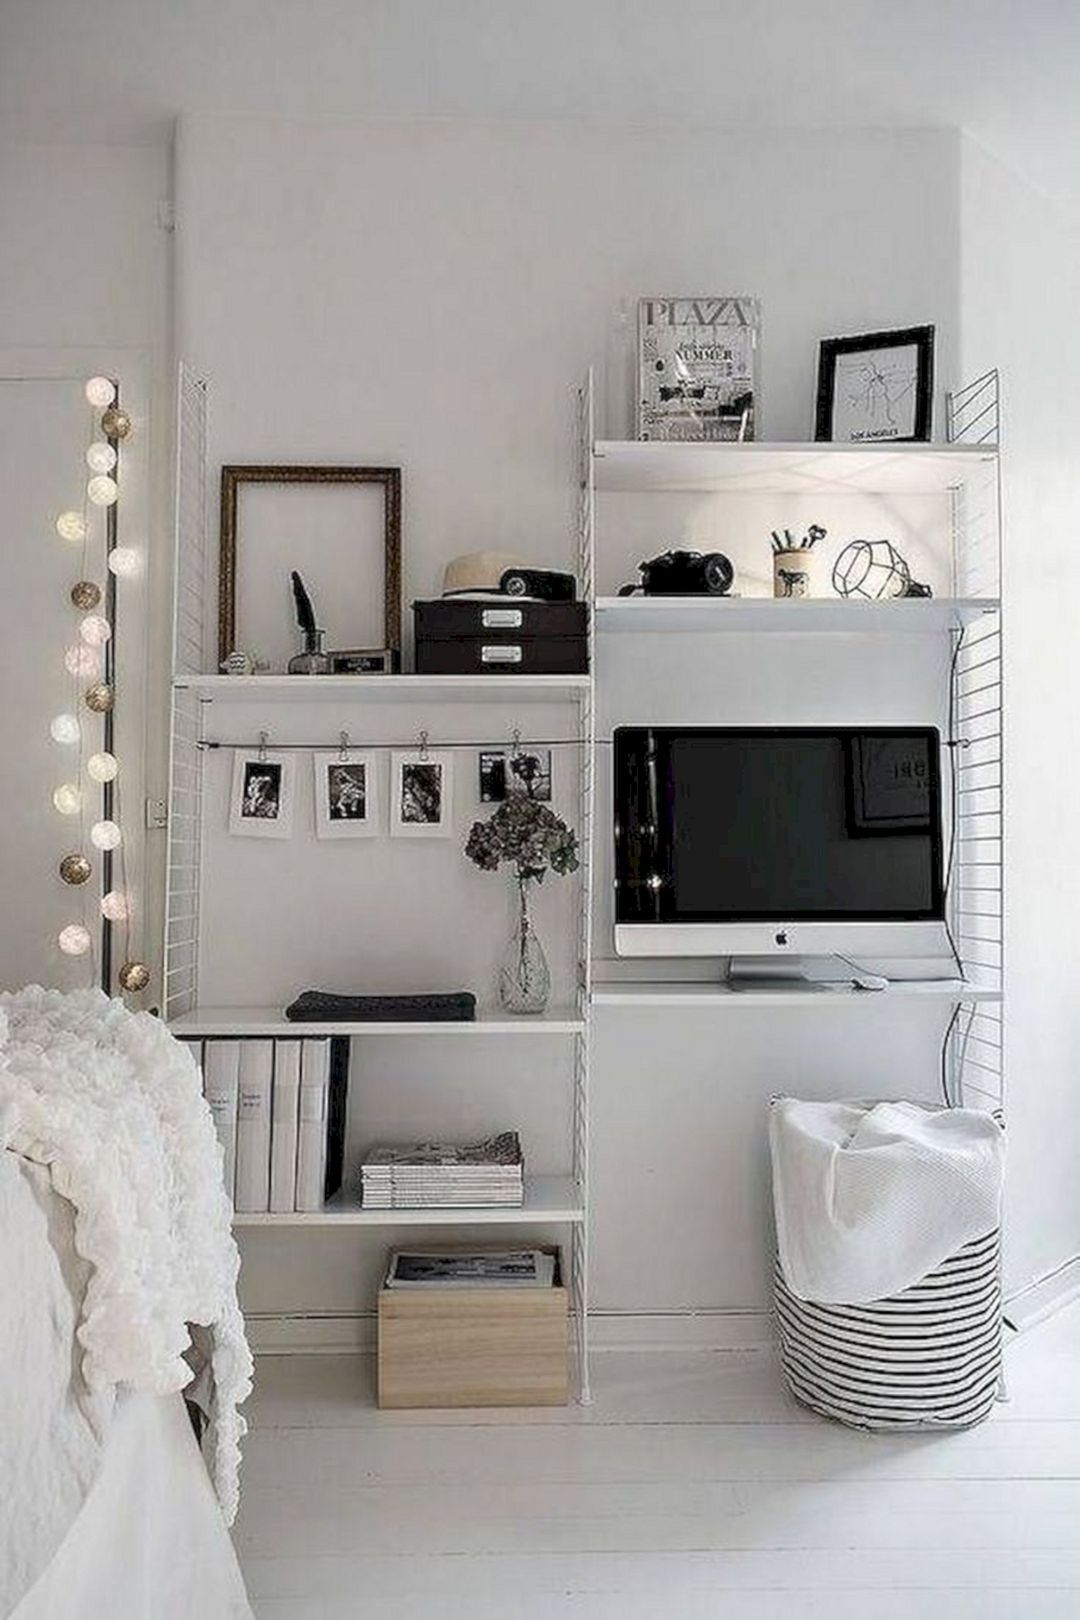 4+ Wonderful DIY Small Bedroom Storage And Organization Ideas For